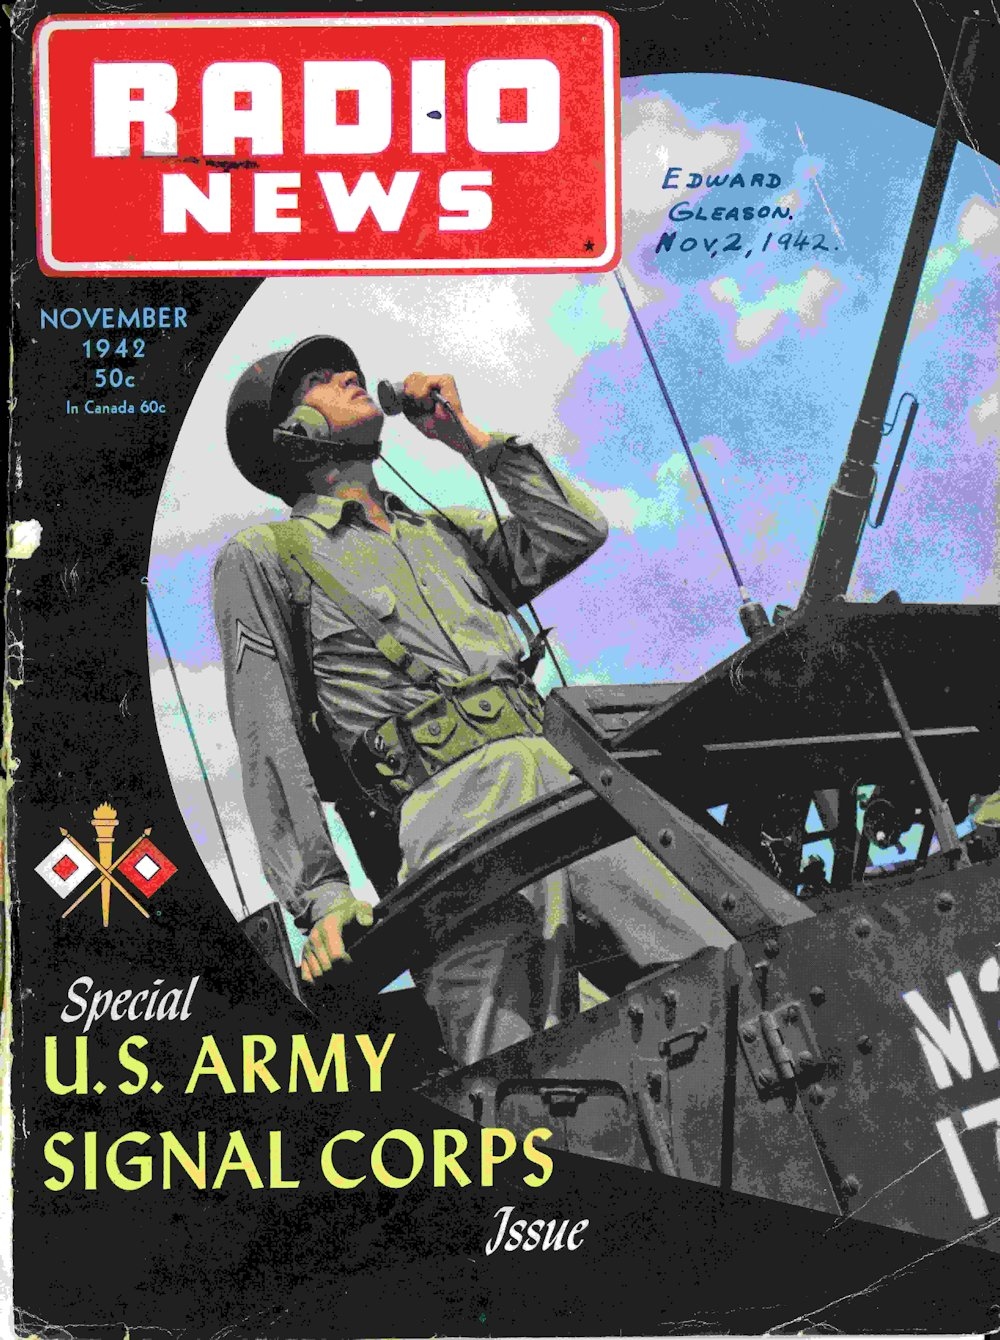 1942 Special Signal Corps Issue of Radio News